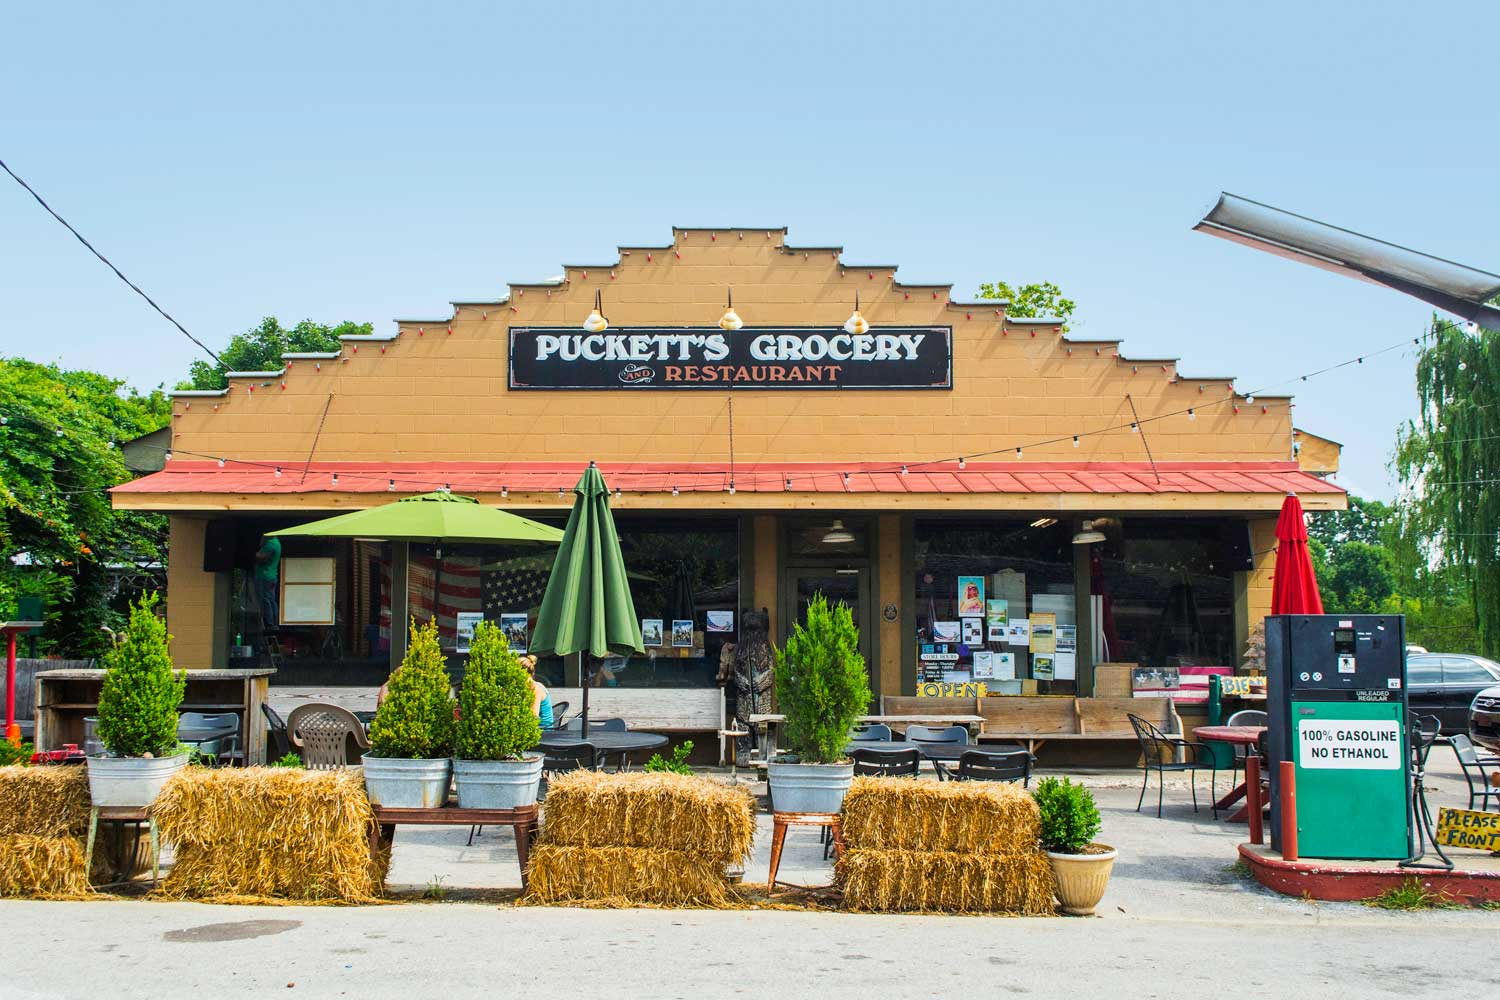 leipers fork tn pucketts